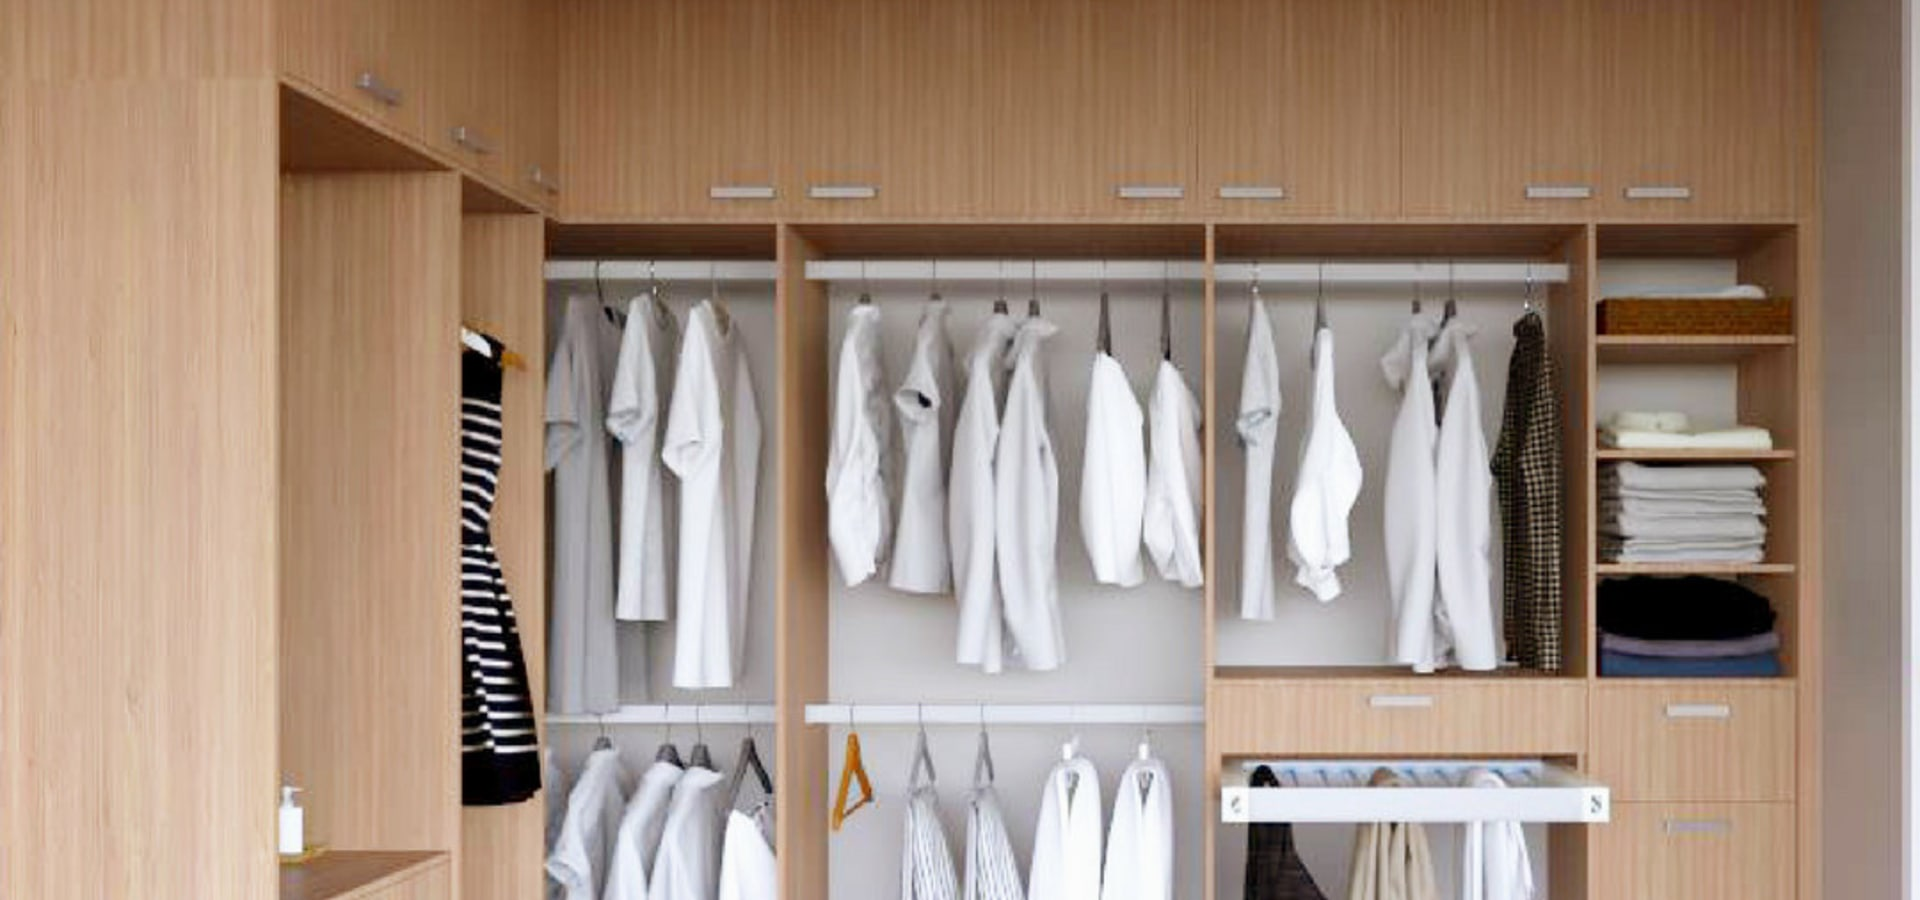 ฺฺB For U Built-In Closet